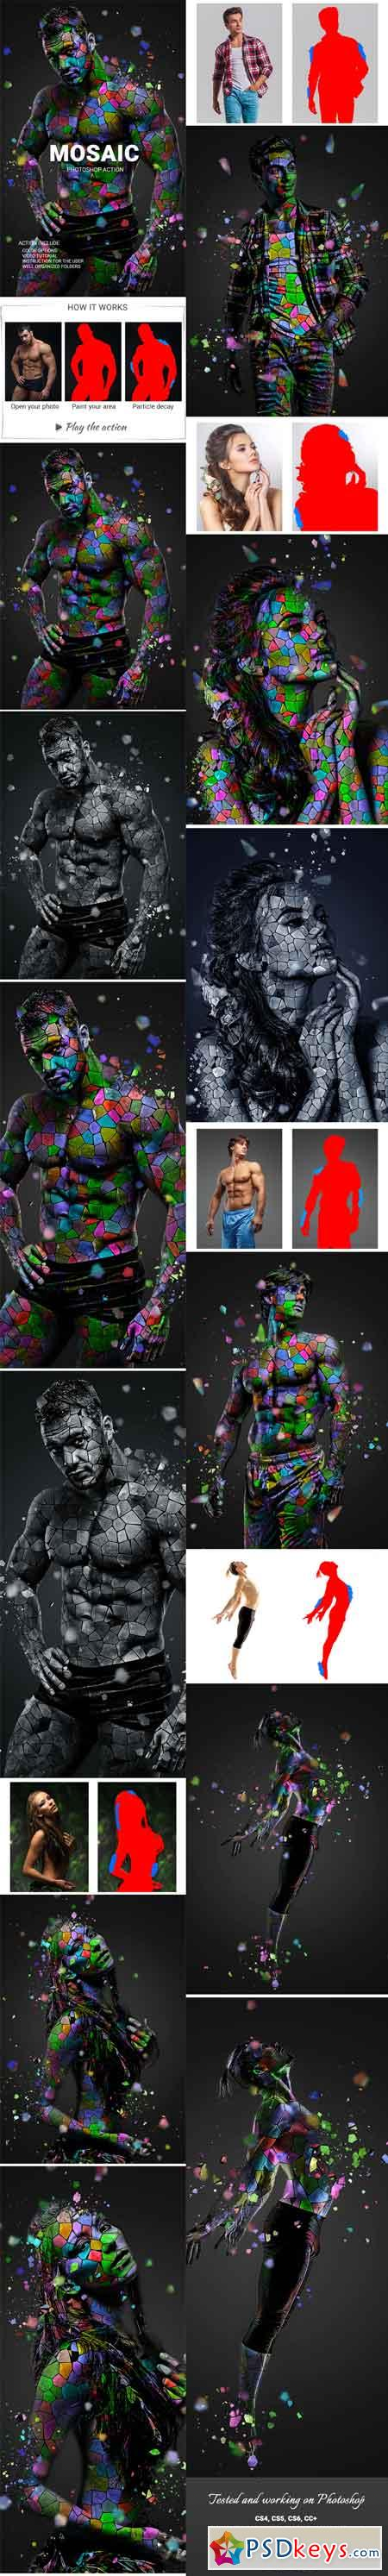 Mosaic Photoshop Action 22744500